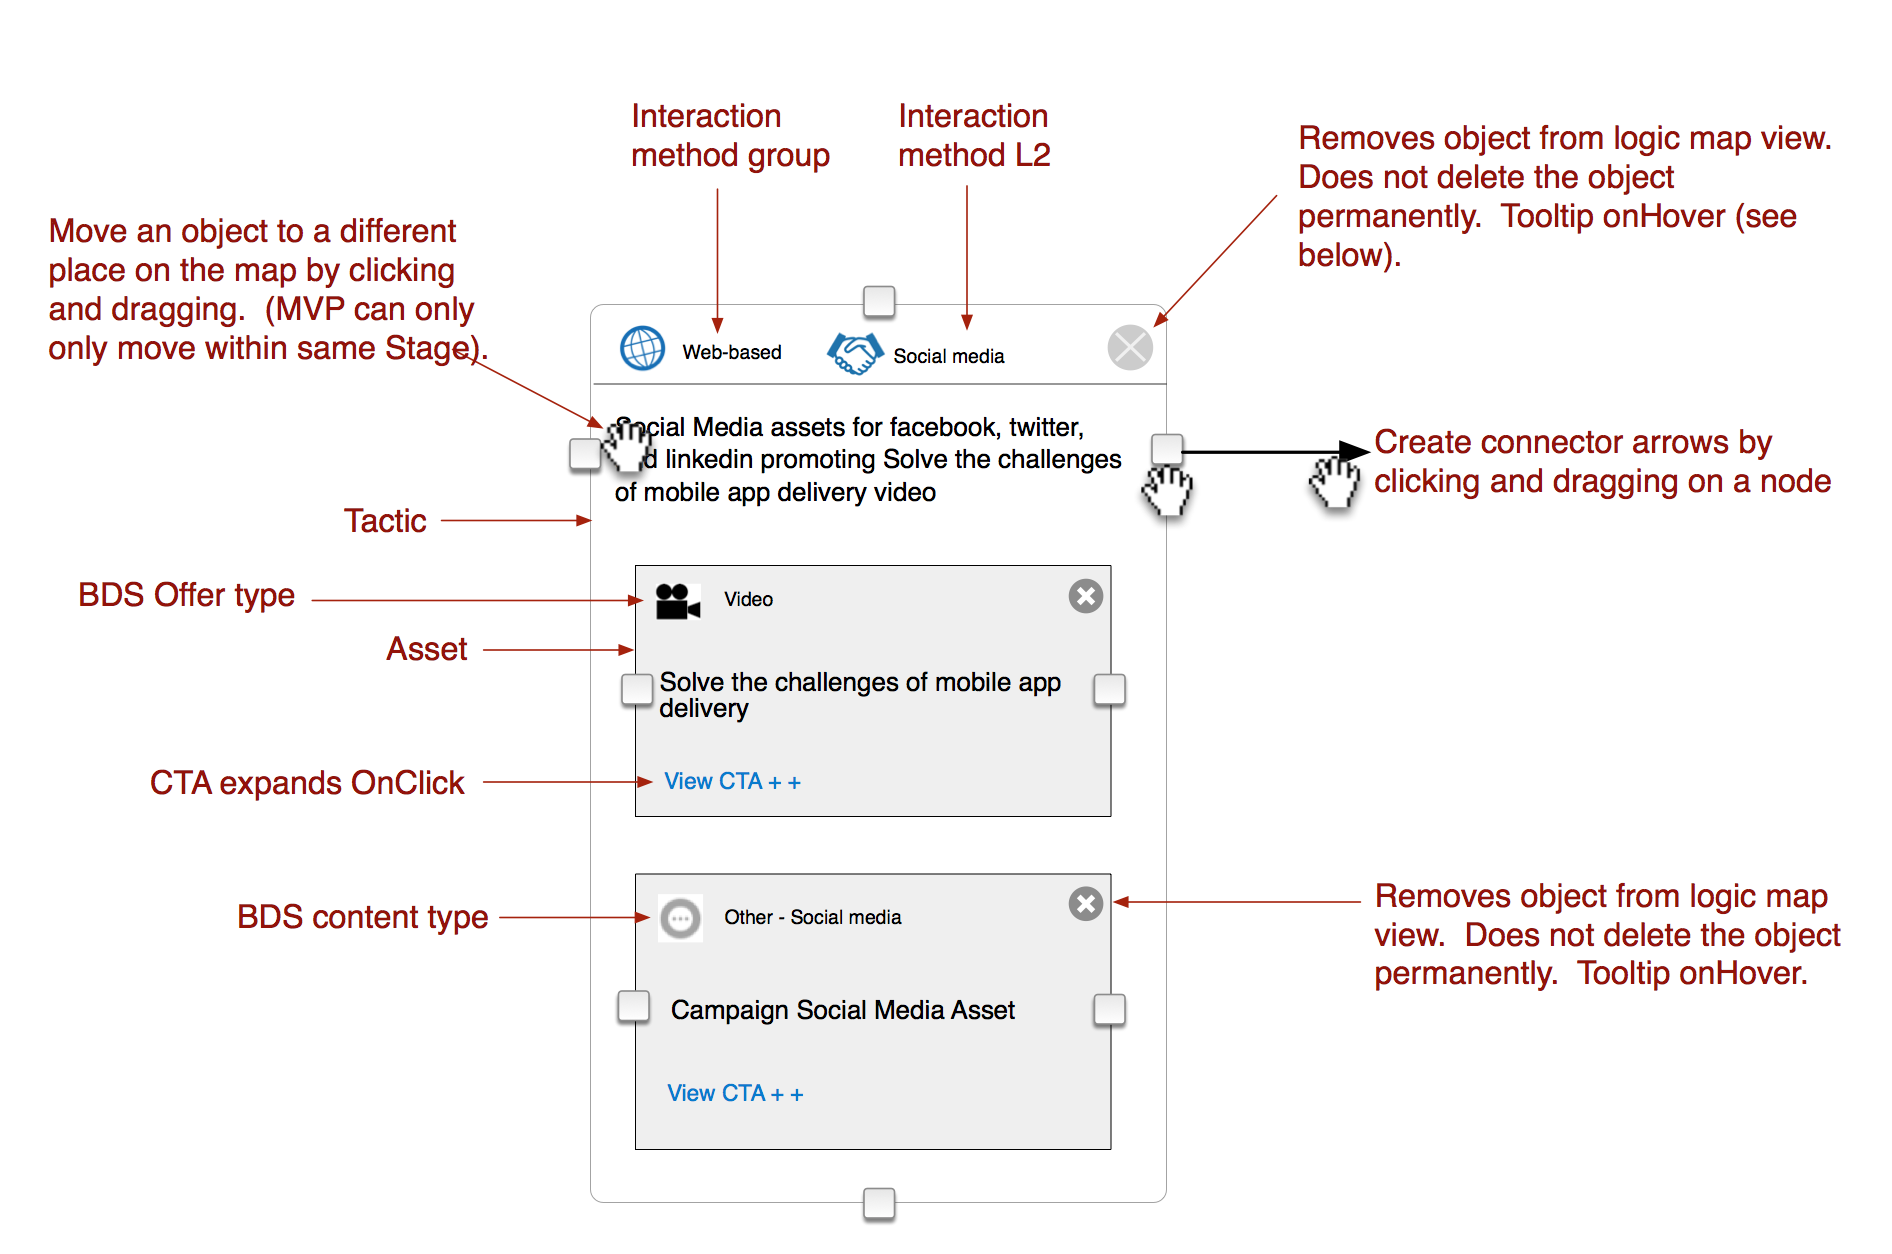 close-up view of marketing campaign content asset with multiple arrows and comments about the various subcomponents